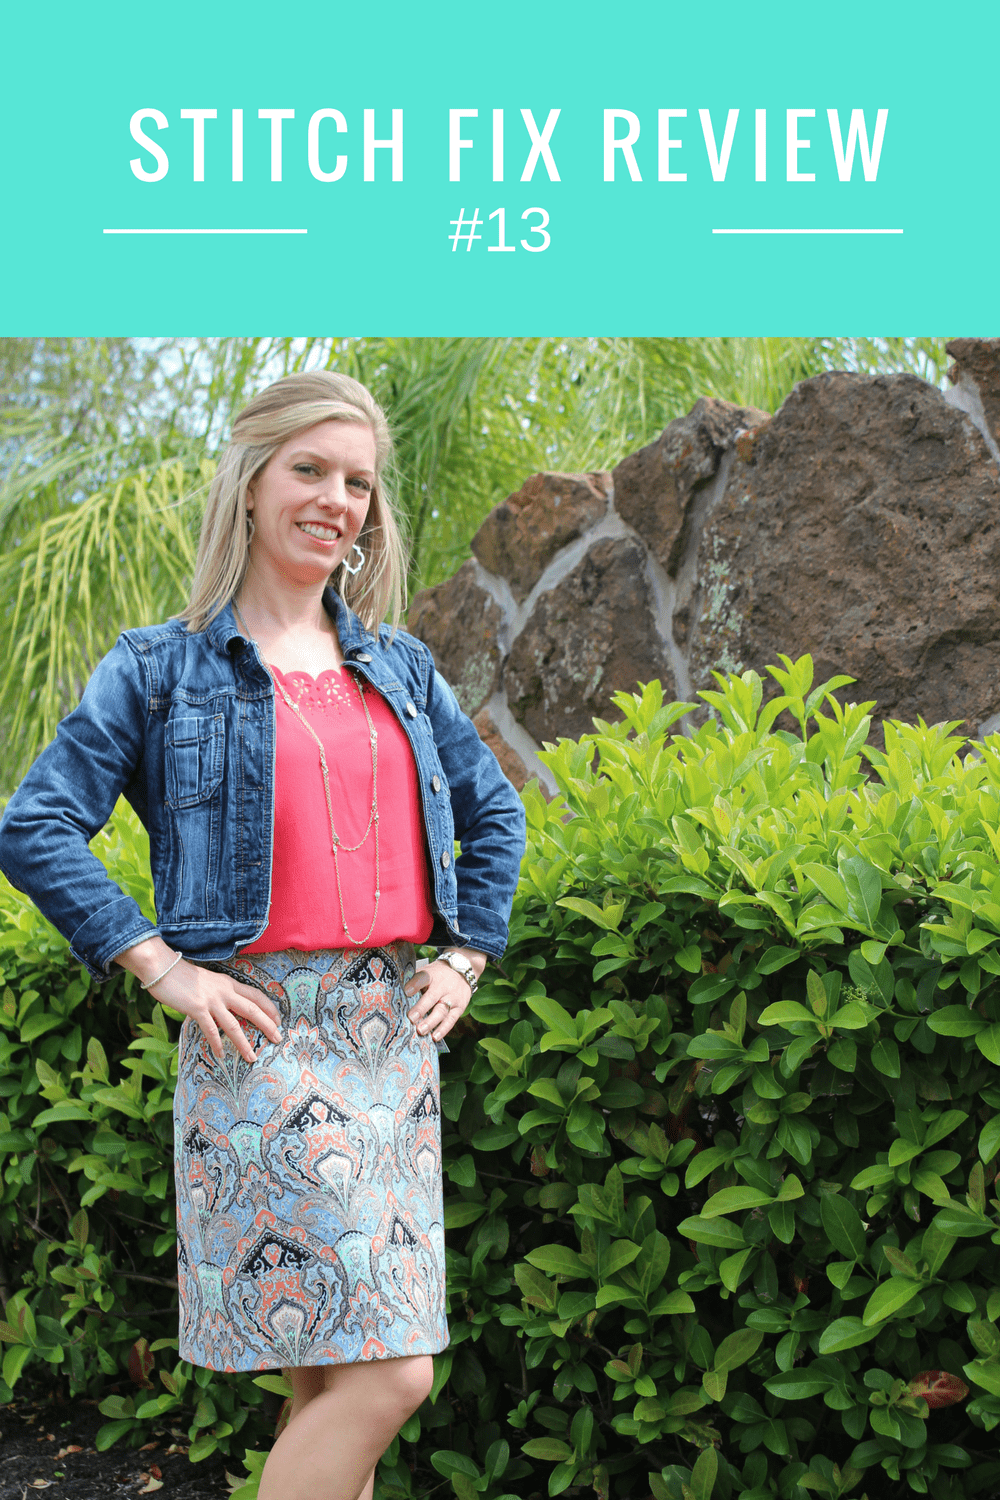 Spring Stitch Fix Review #13